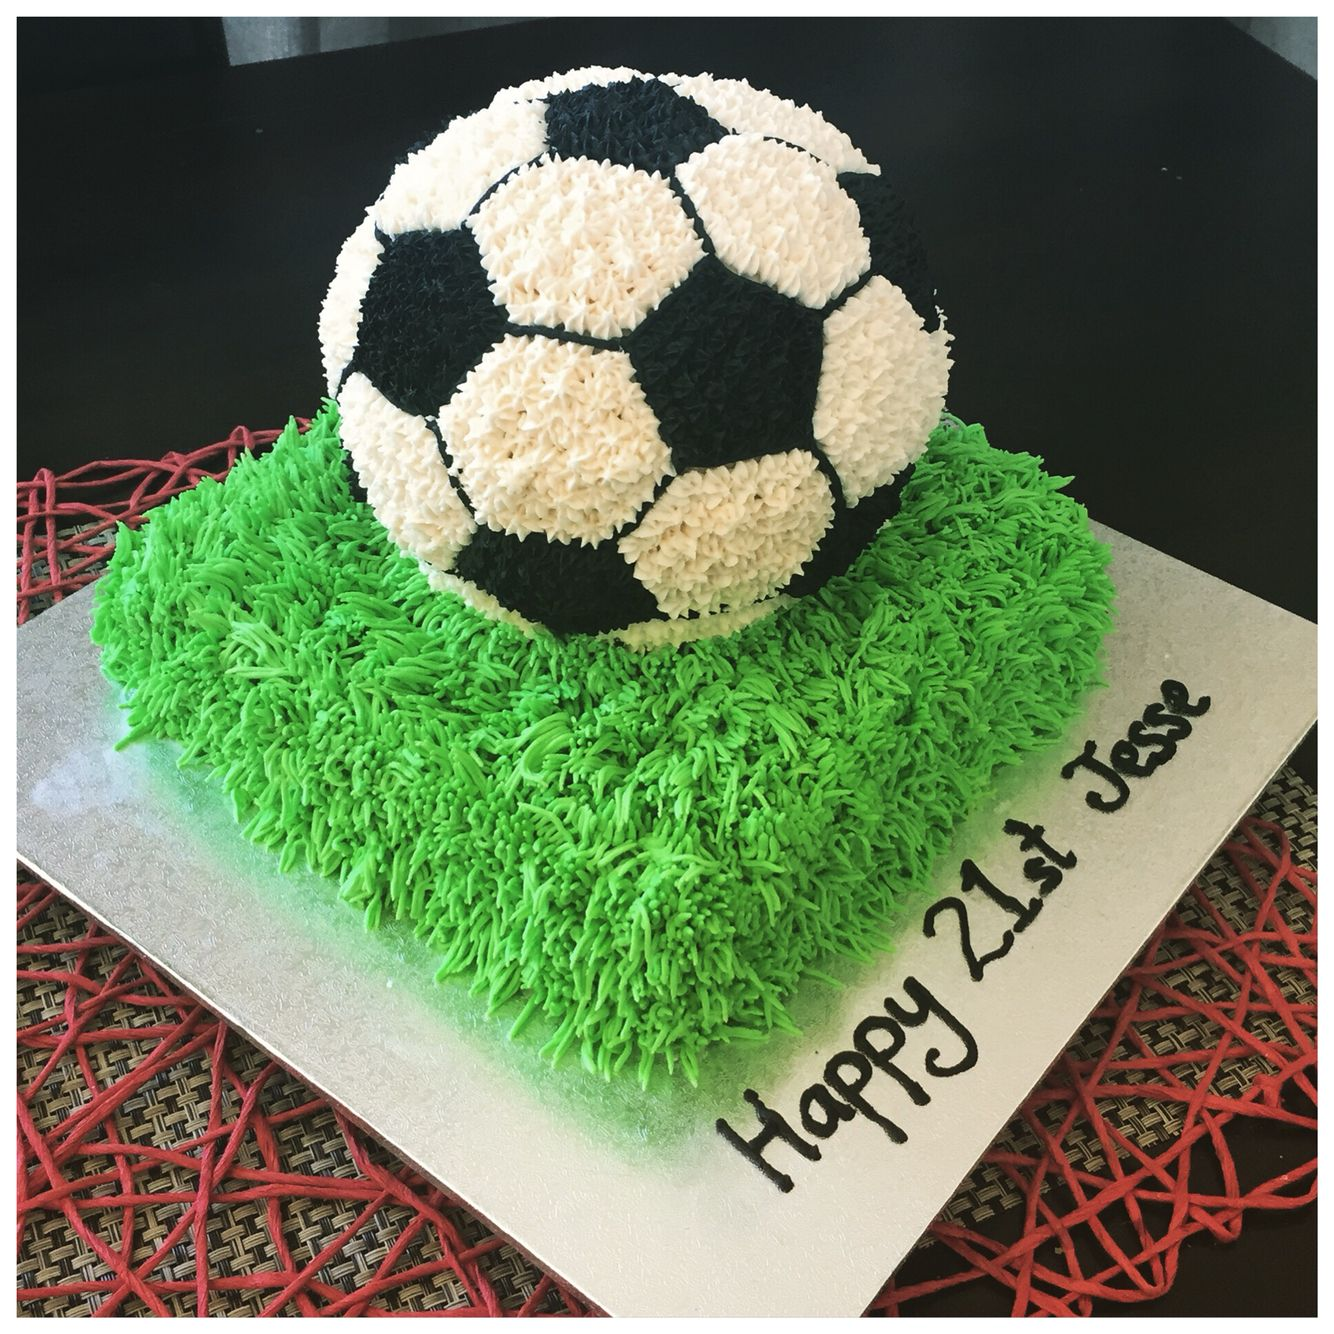 How To Decorate A Soccer Ball Cake Soccer Ball Tutorial & How To Make A Round Cake~ Video  School